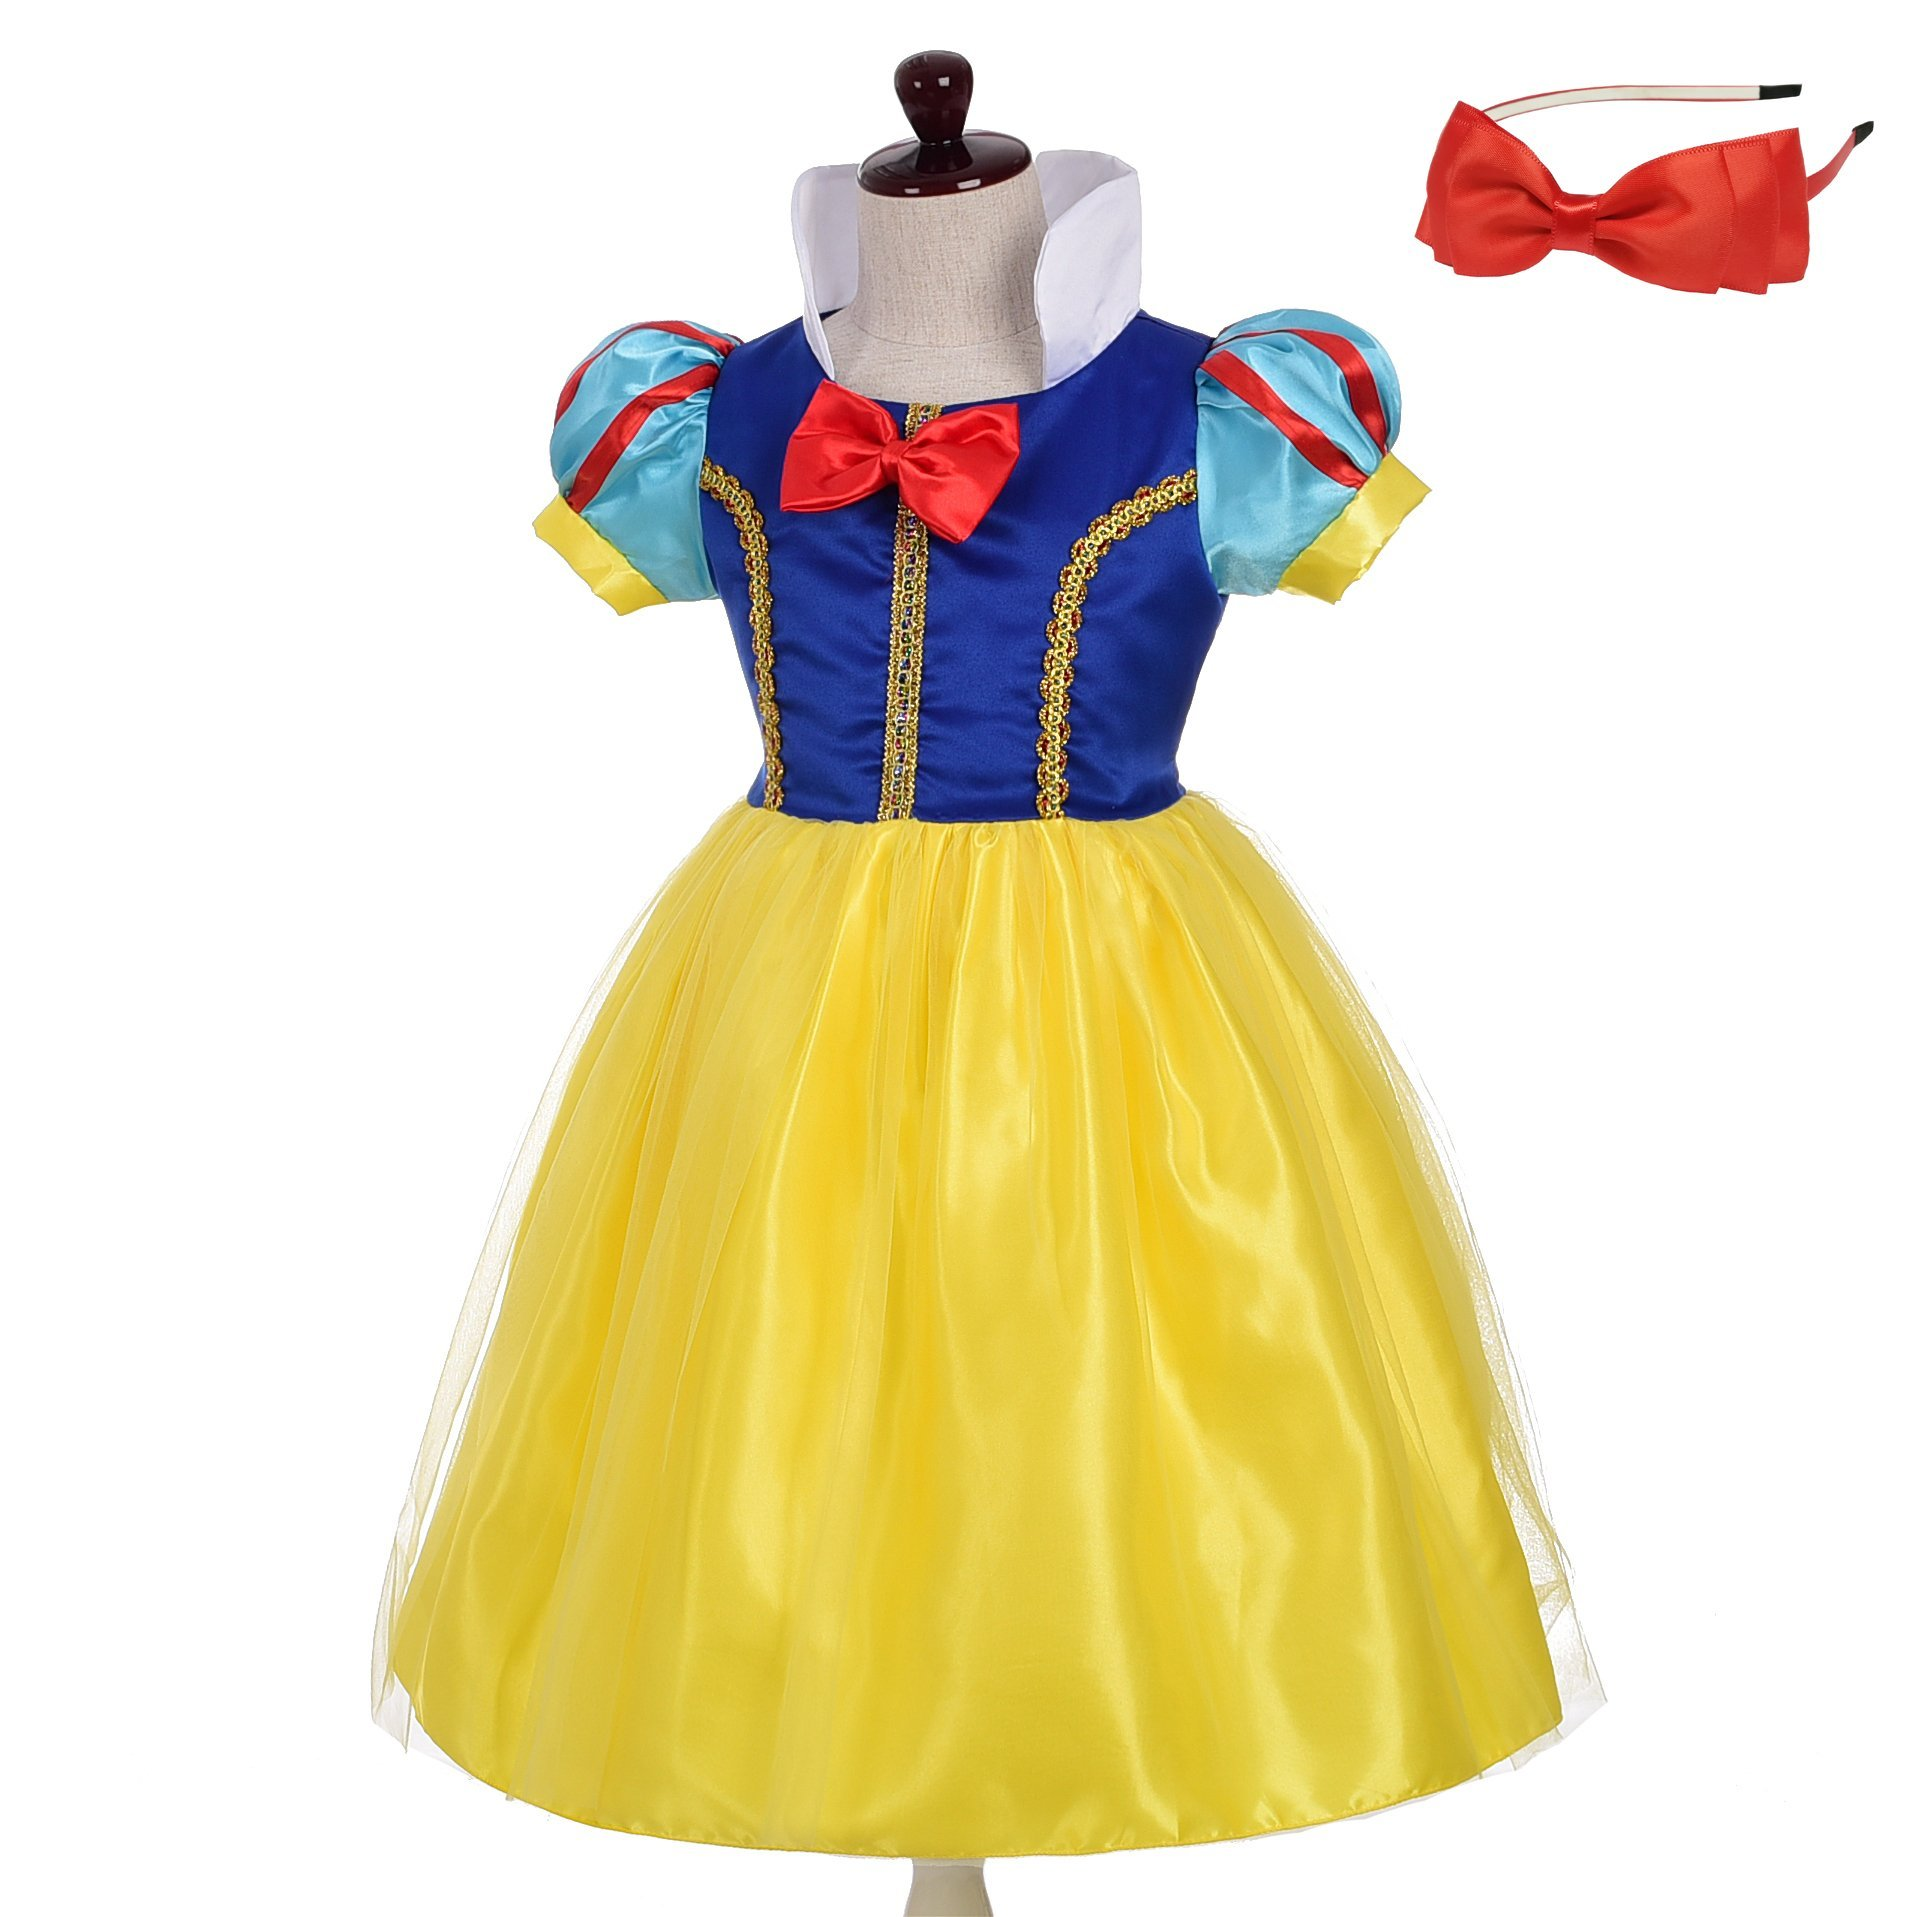 Lito Angels Baby-Girls' Princess Snow White Costume Fancy Dresses up Halloween Outfit with Headband Size 18-24 Months B